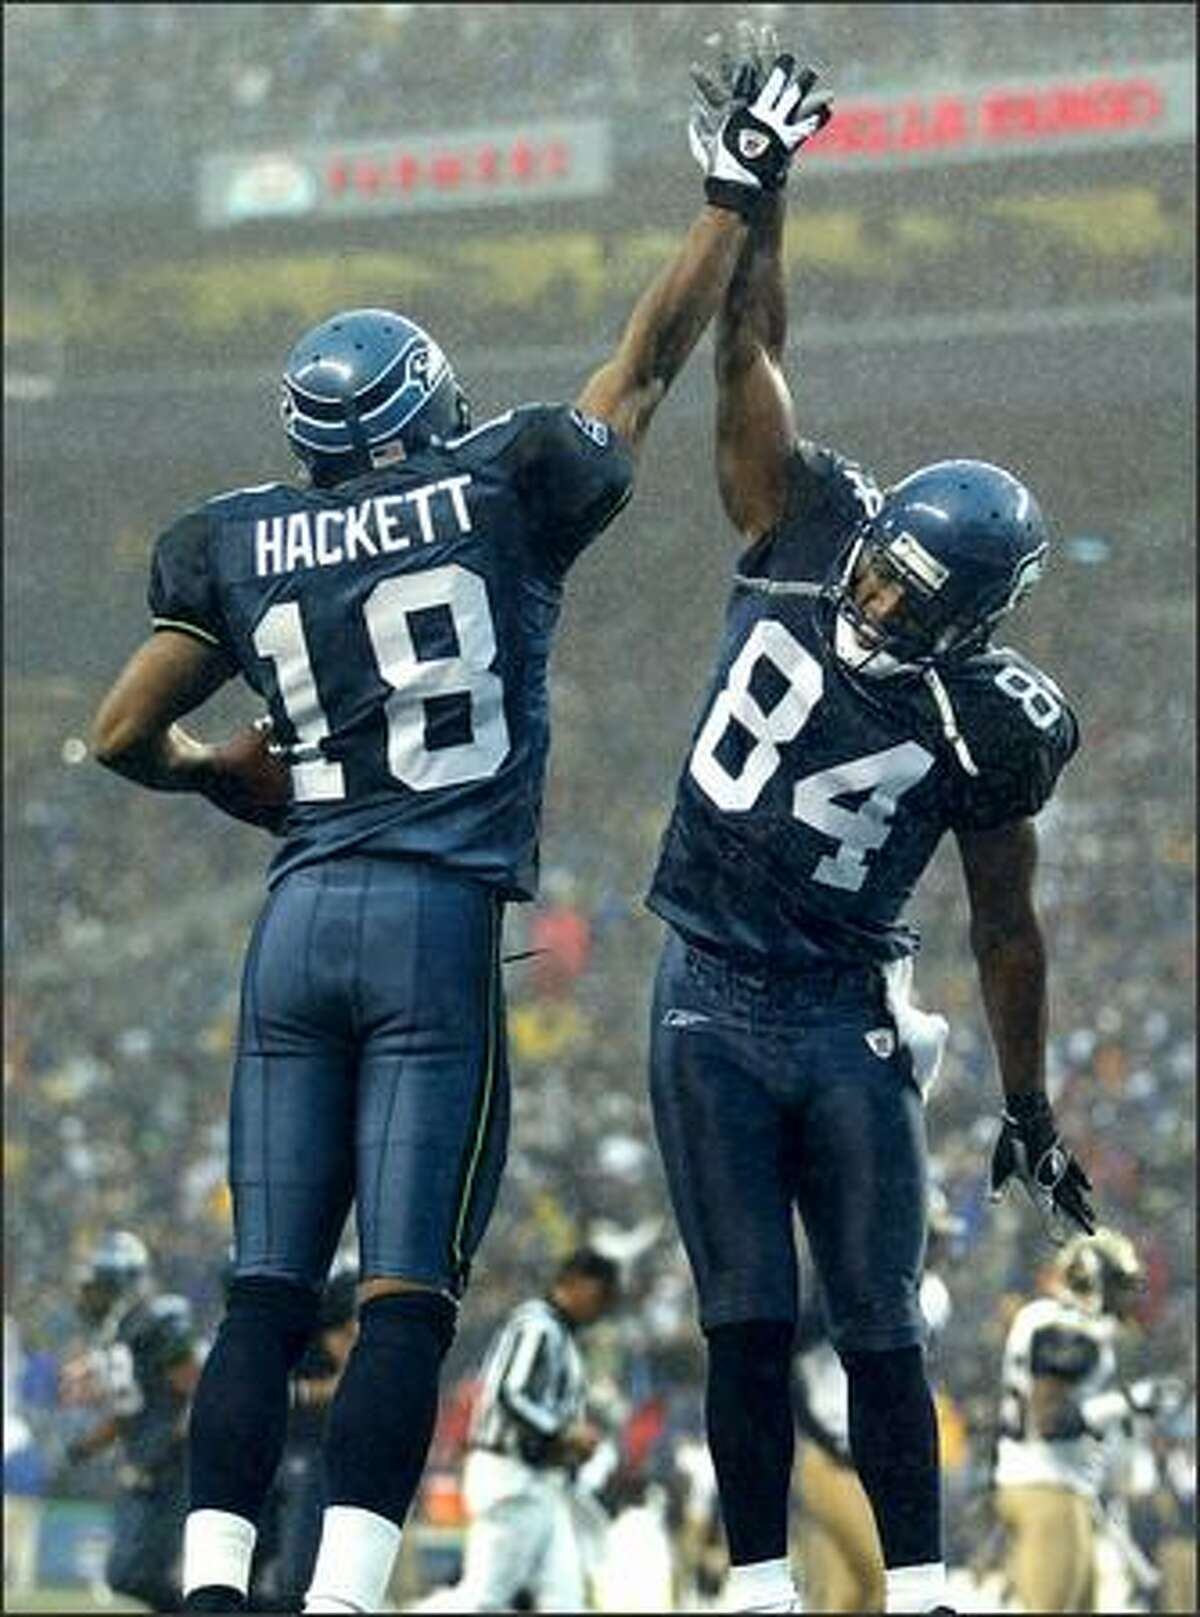 Seahawks' wide receivers Bobby Engram (right) and D.J. Hackett celebrate following Hackett's 31-yard touchdown reception in the third quarter.